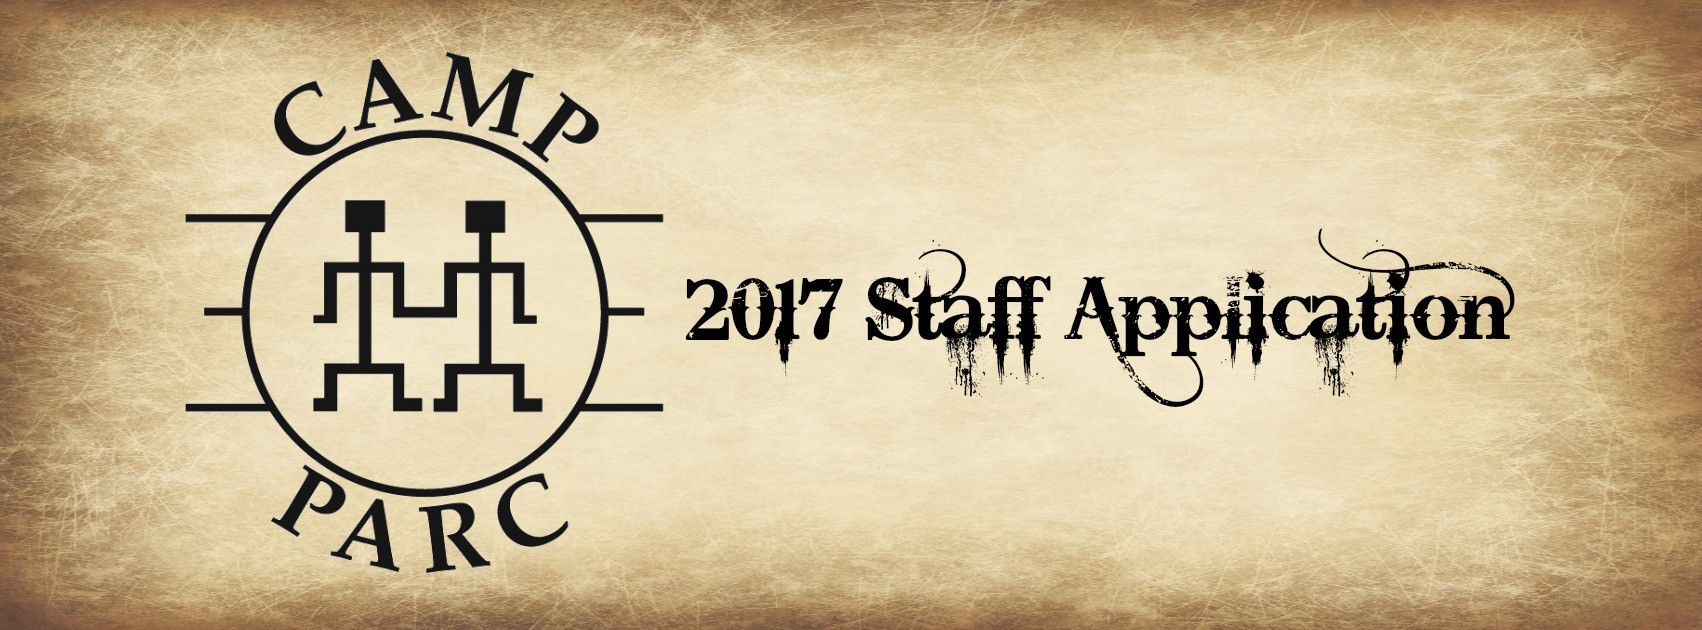 Camp PARC 2017 Staff Application